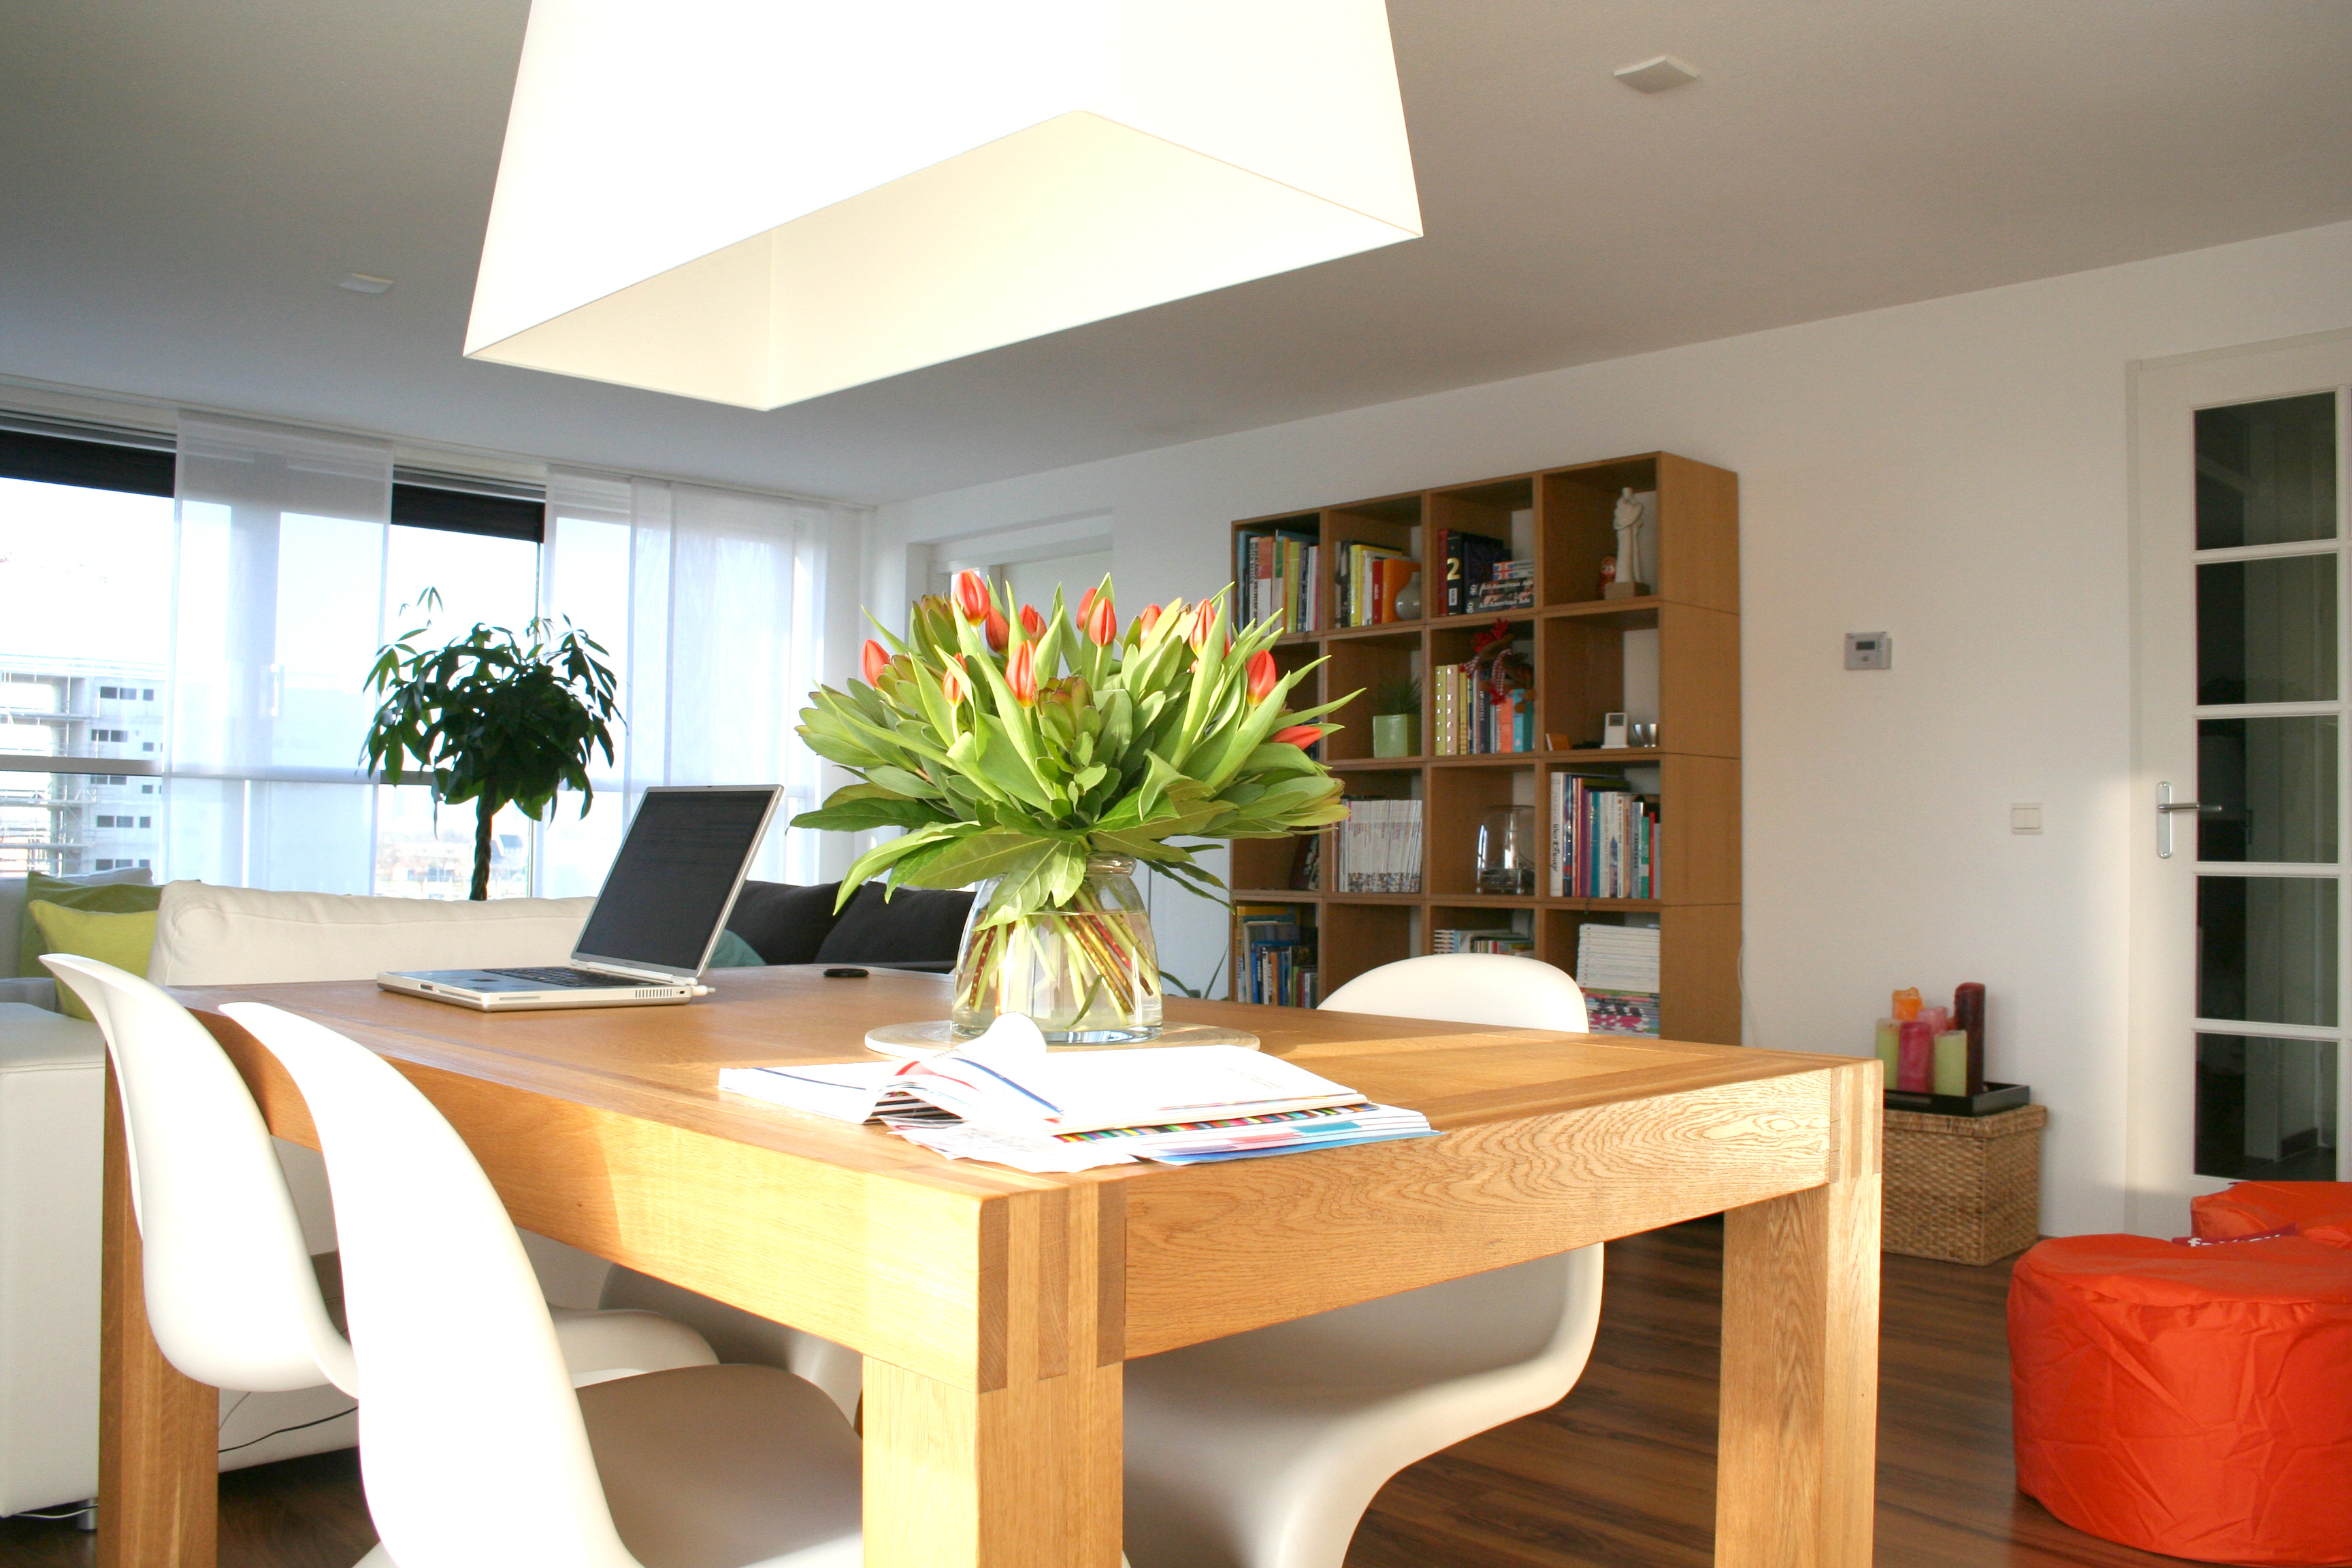 Essential tips for displaying flowers in your home